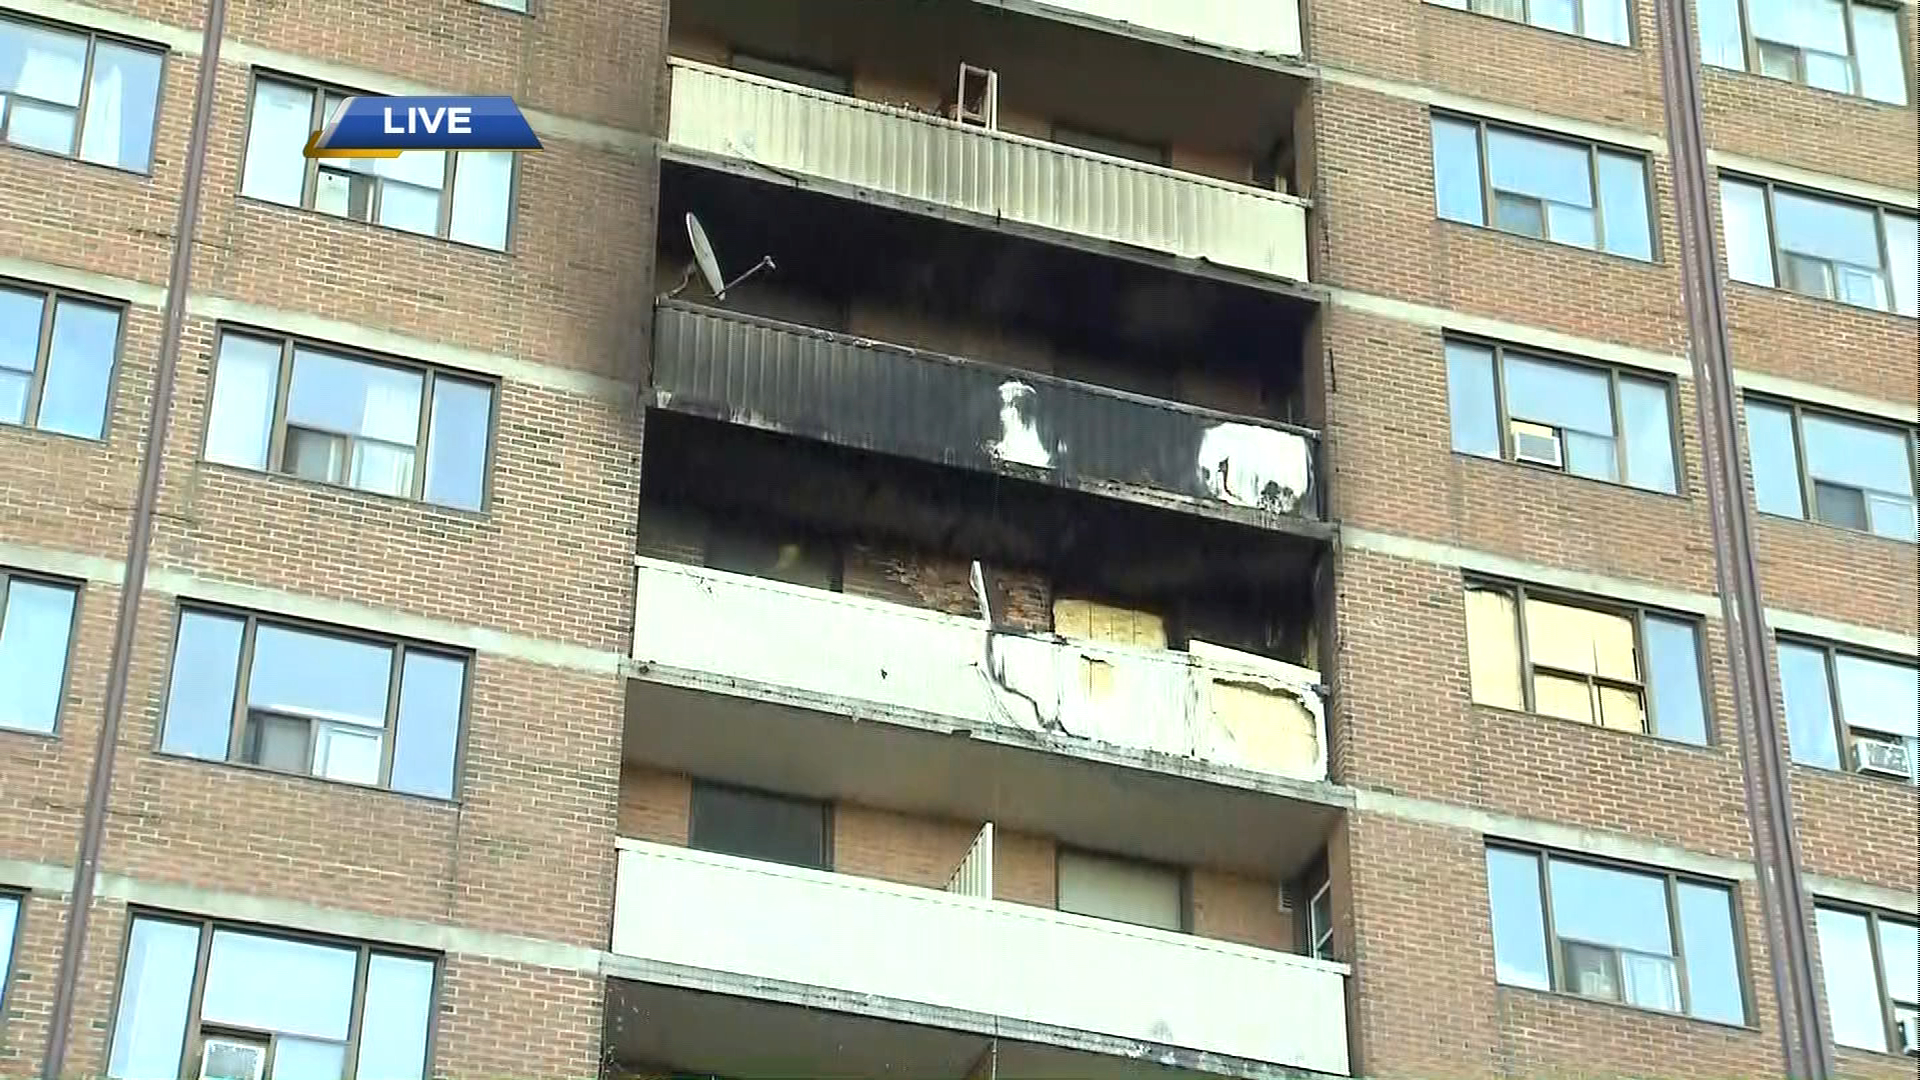 A charred balcony can be seen at an apartment building on Dunn Avenue after a fire on June 5, 2017. CITYNEWS